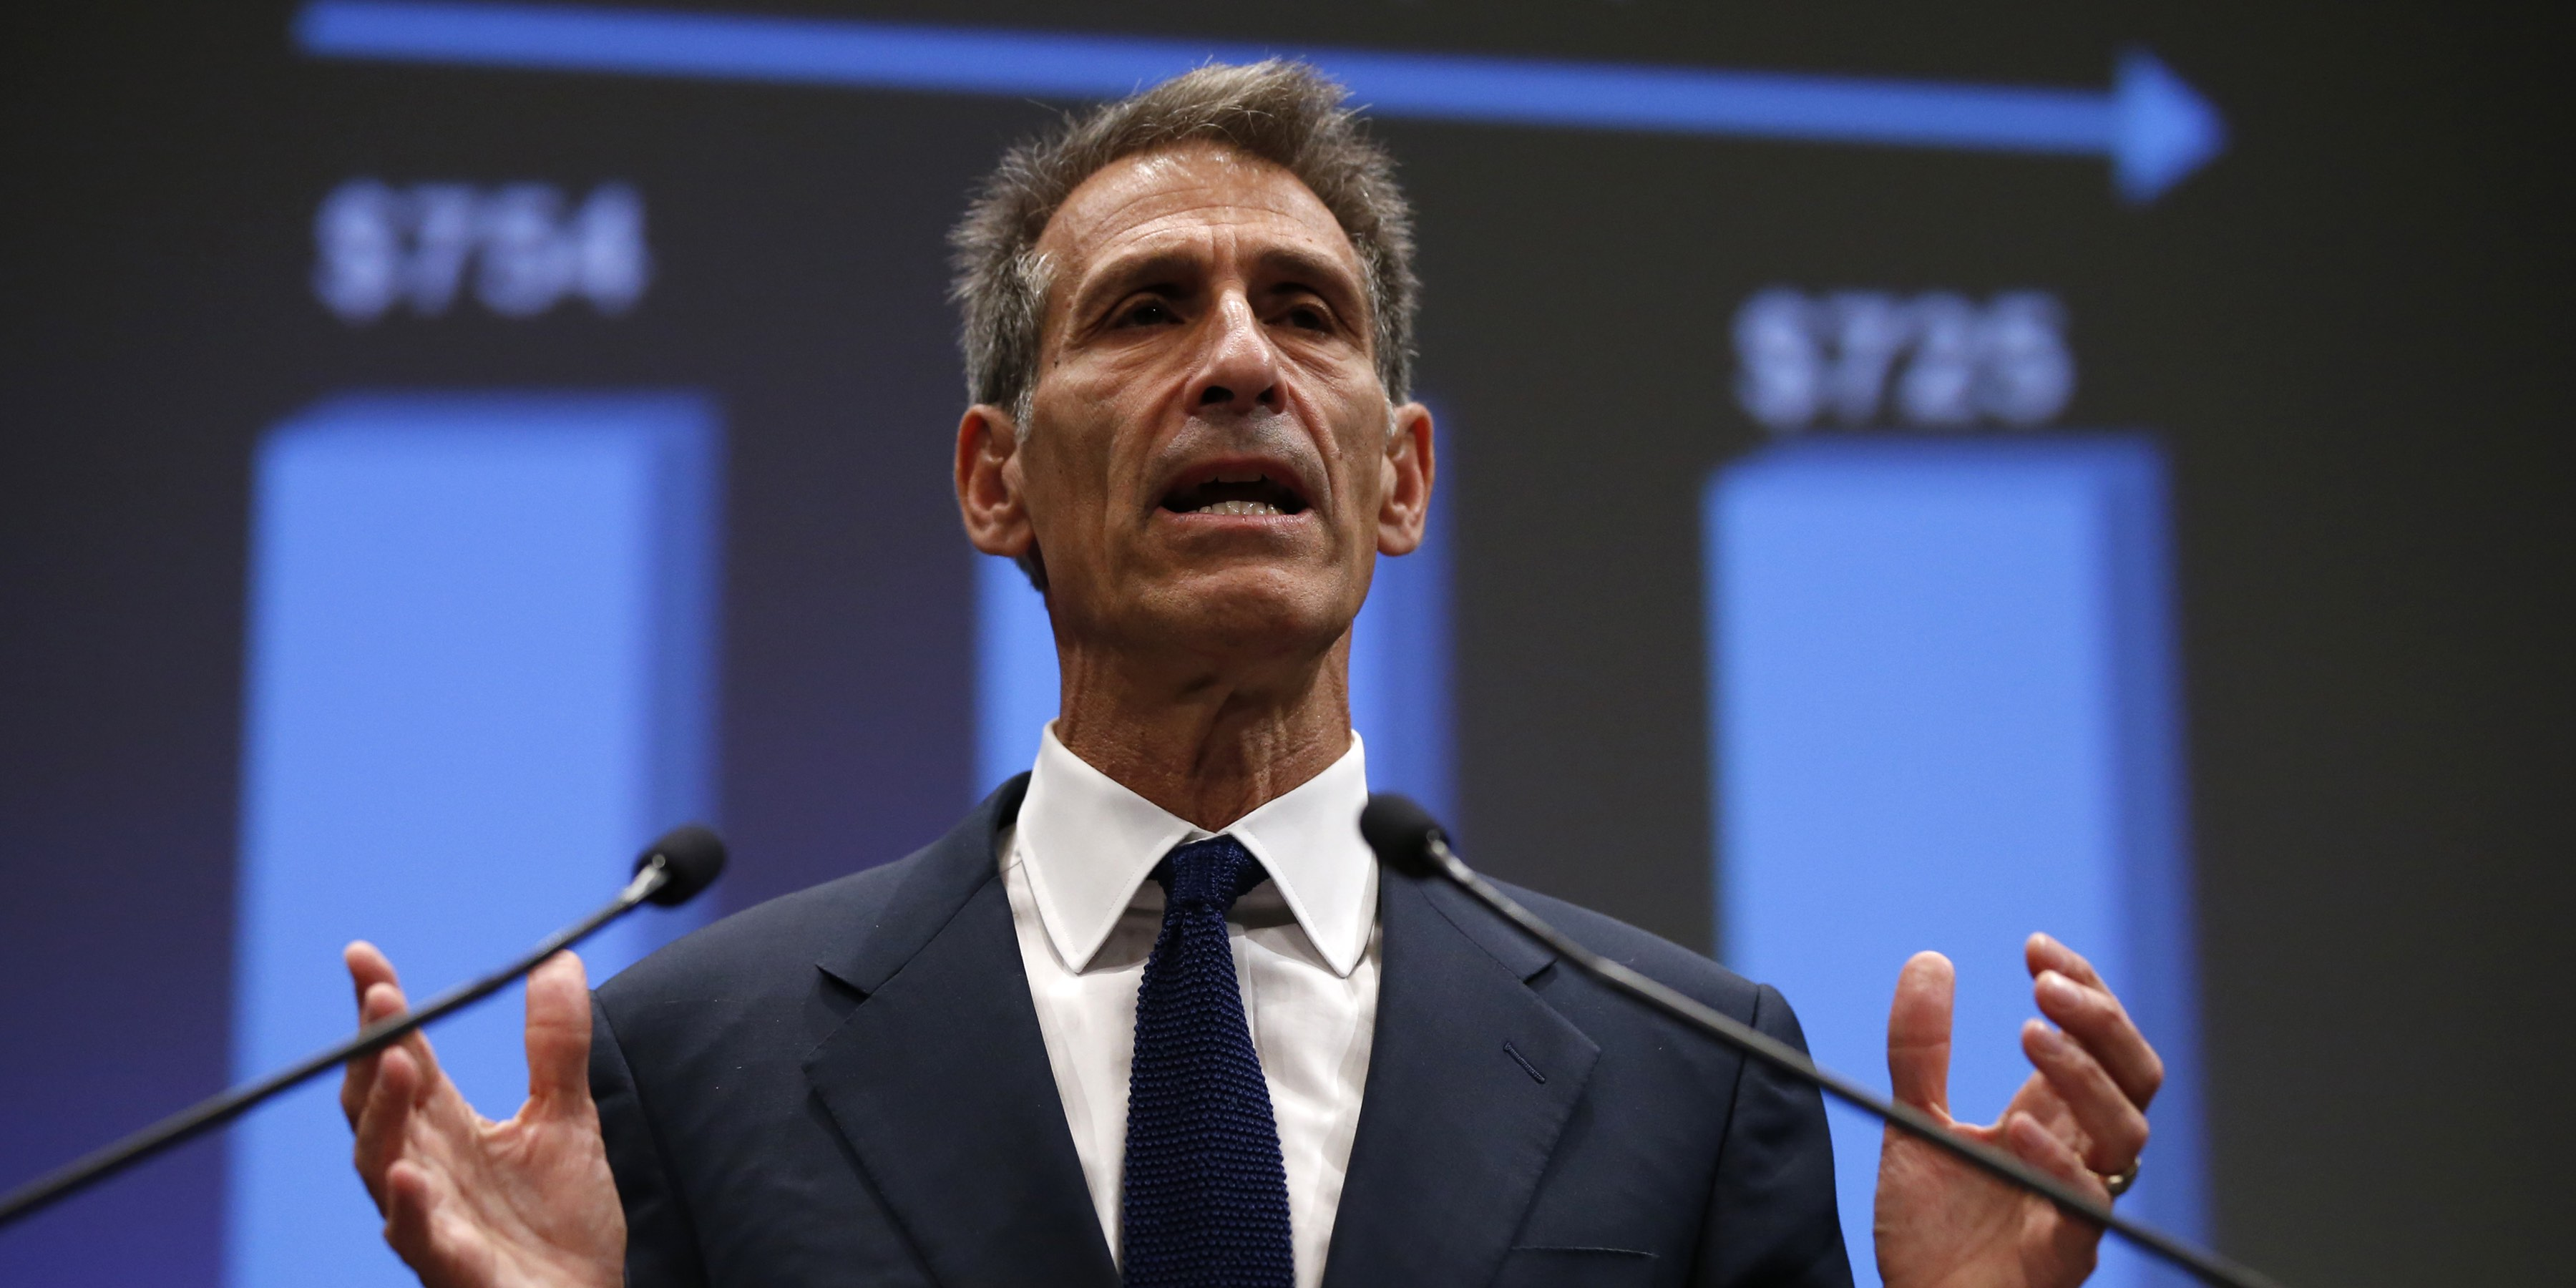 Michael Lynton, CEO Sony Entertainment and CEO and chairman Sony Pictures Entertainment, speaks during an investors' conference at the company's headquarters in Tokyo November 18, 2014. Japan's Sony Corp said it is aiming to garner up to $11 billion in revenue from its movie business in three years time, a 36 percent increase over levels forecast for the current financial year. REUTERS/Toru Hanai